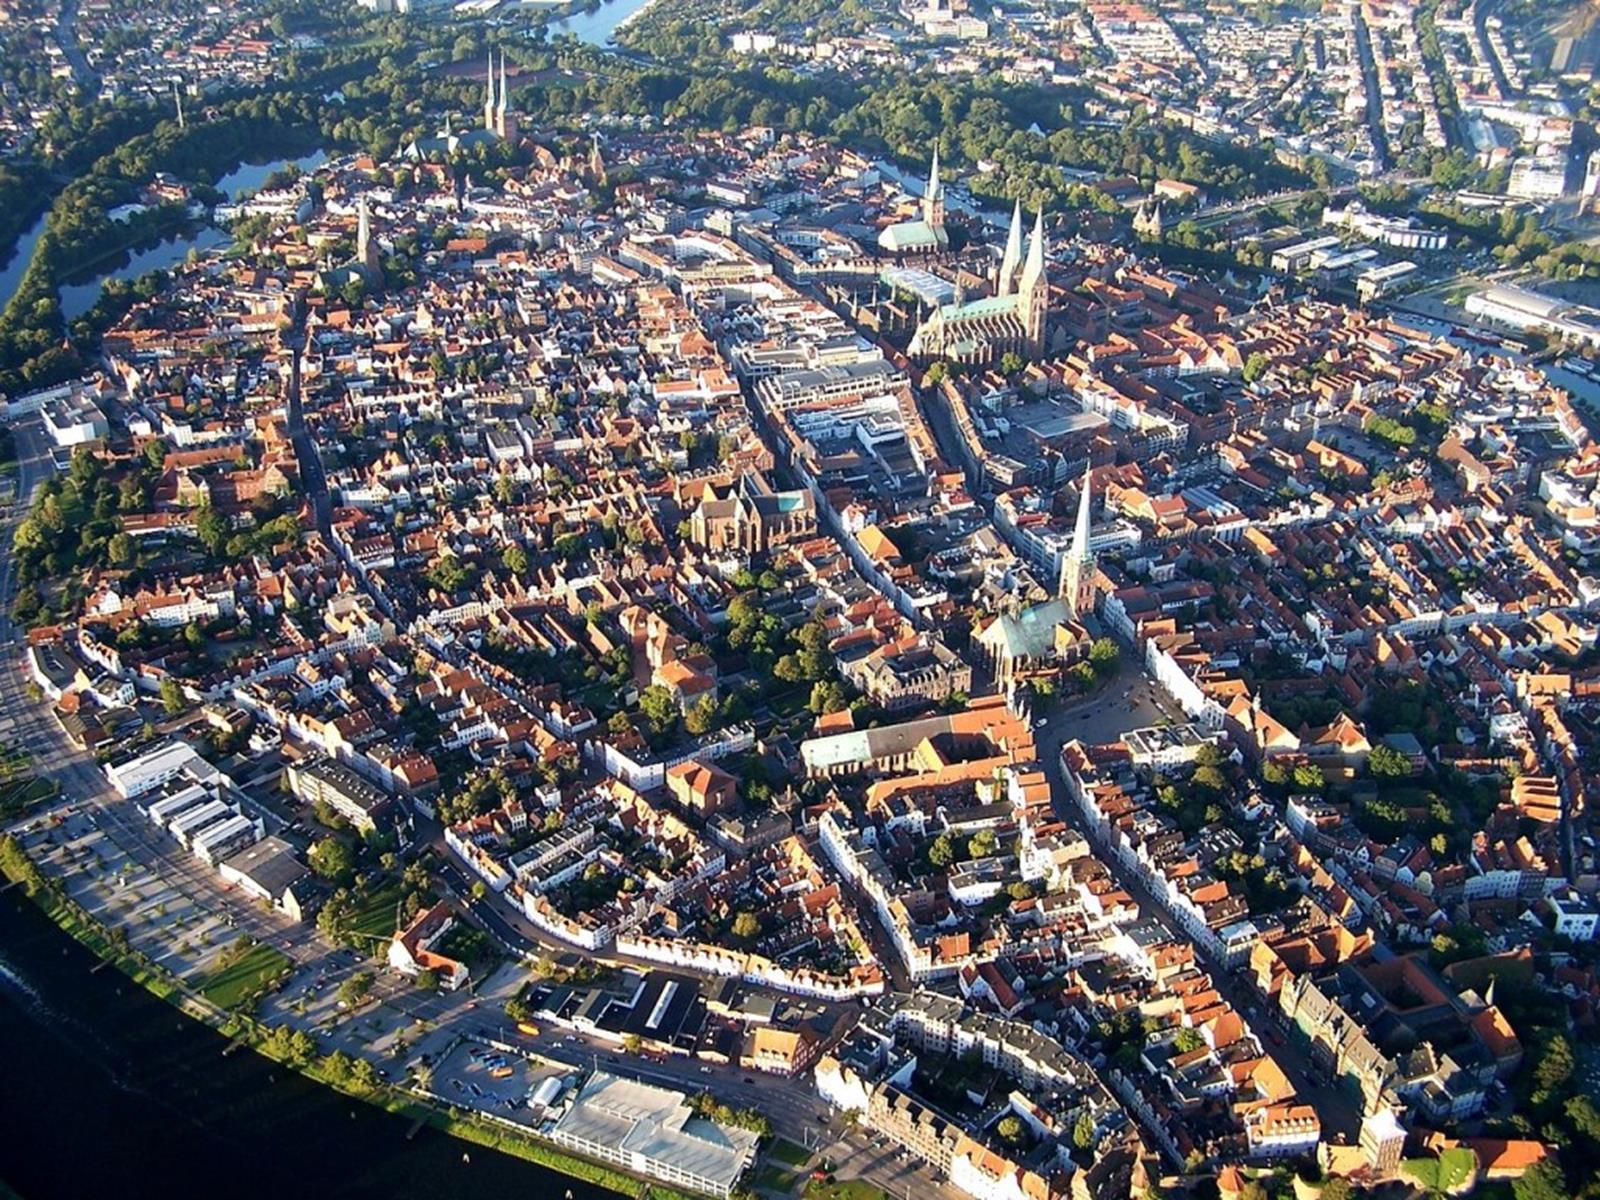 Ariel View of Old Town